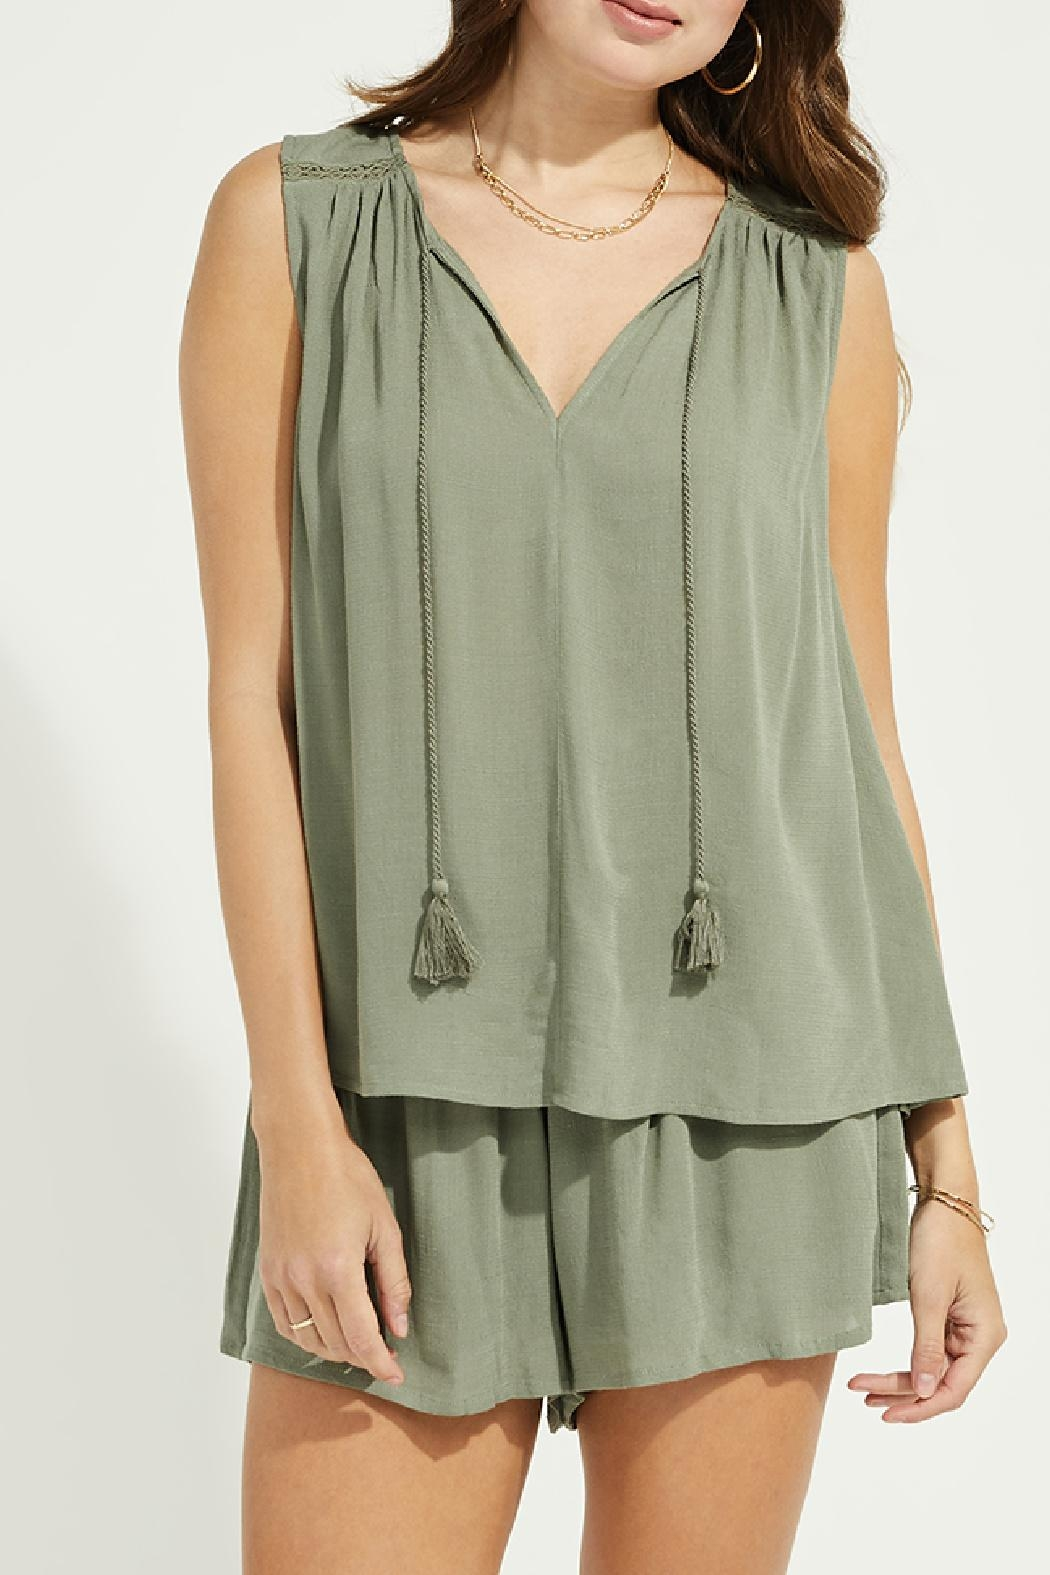 Gentle Fawn Lace Trim Tank - Main Image